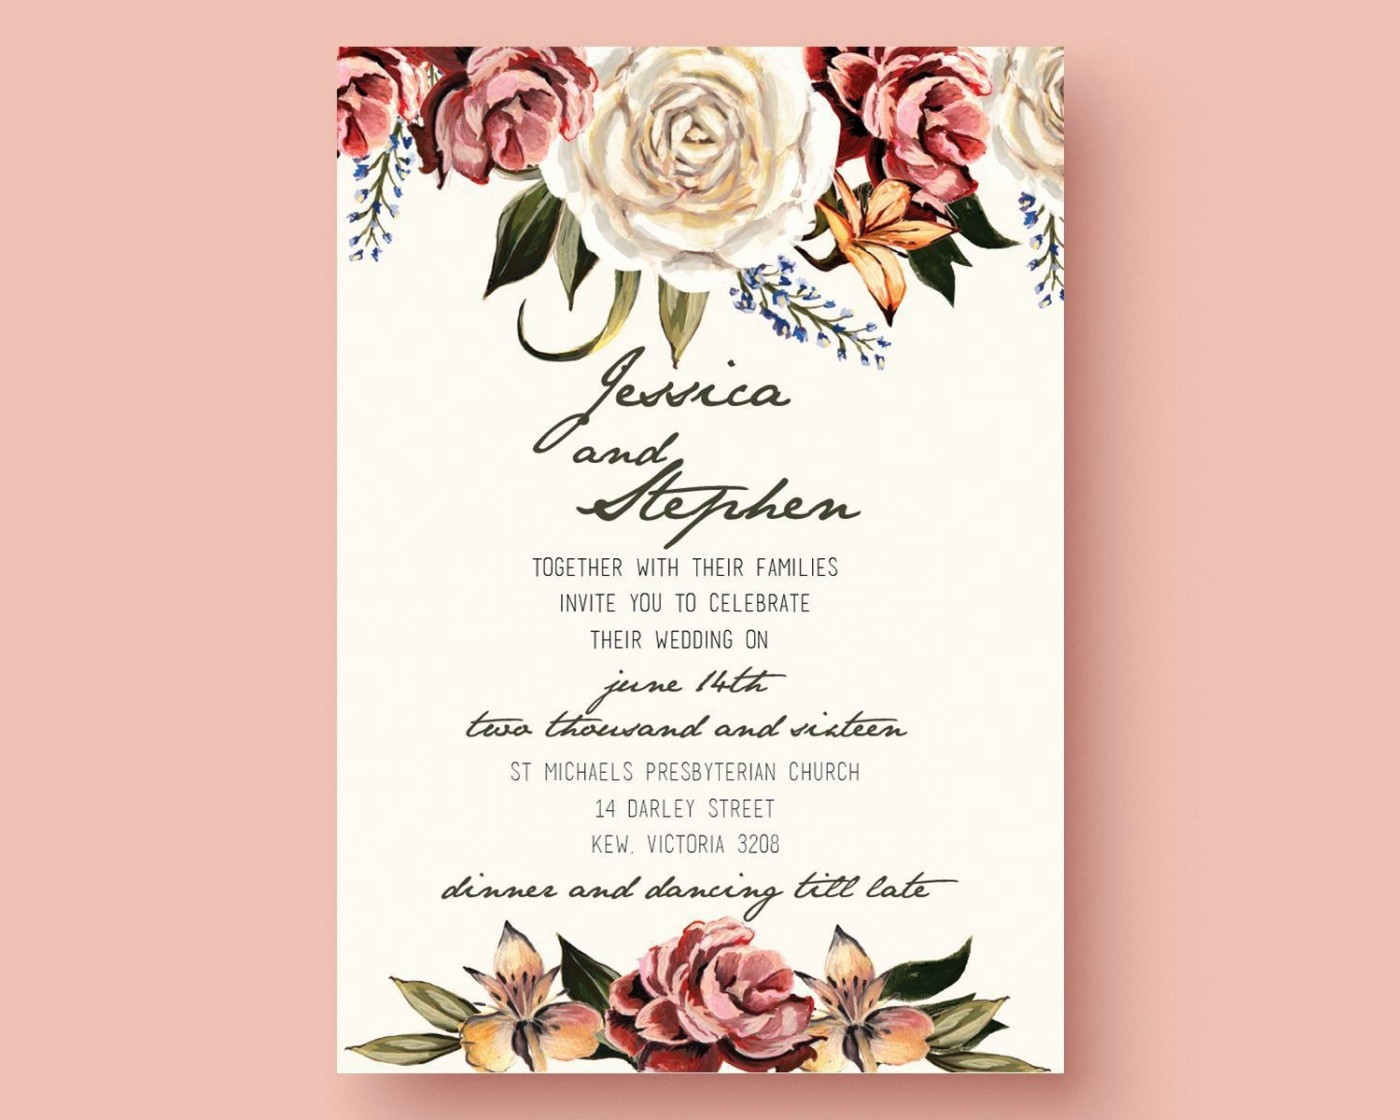 002 Unusual Free Wedding Invitation Template Download Sample  Psd Card Indian1400